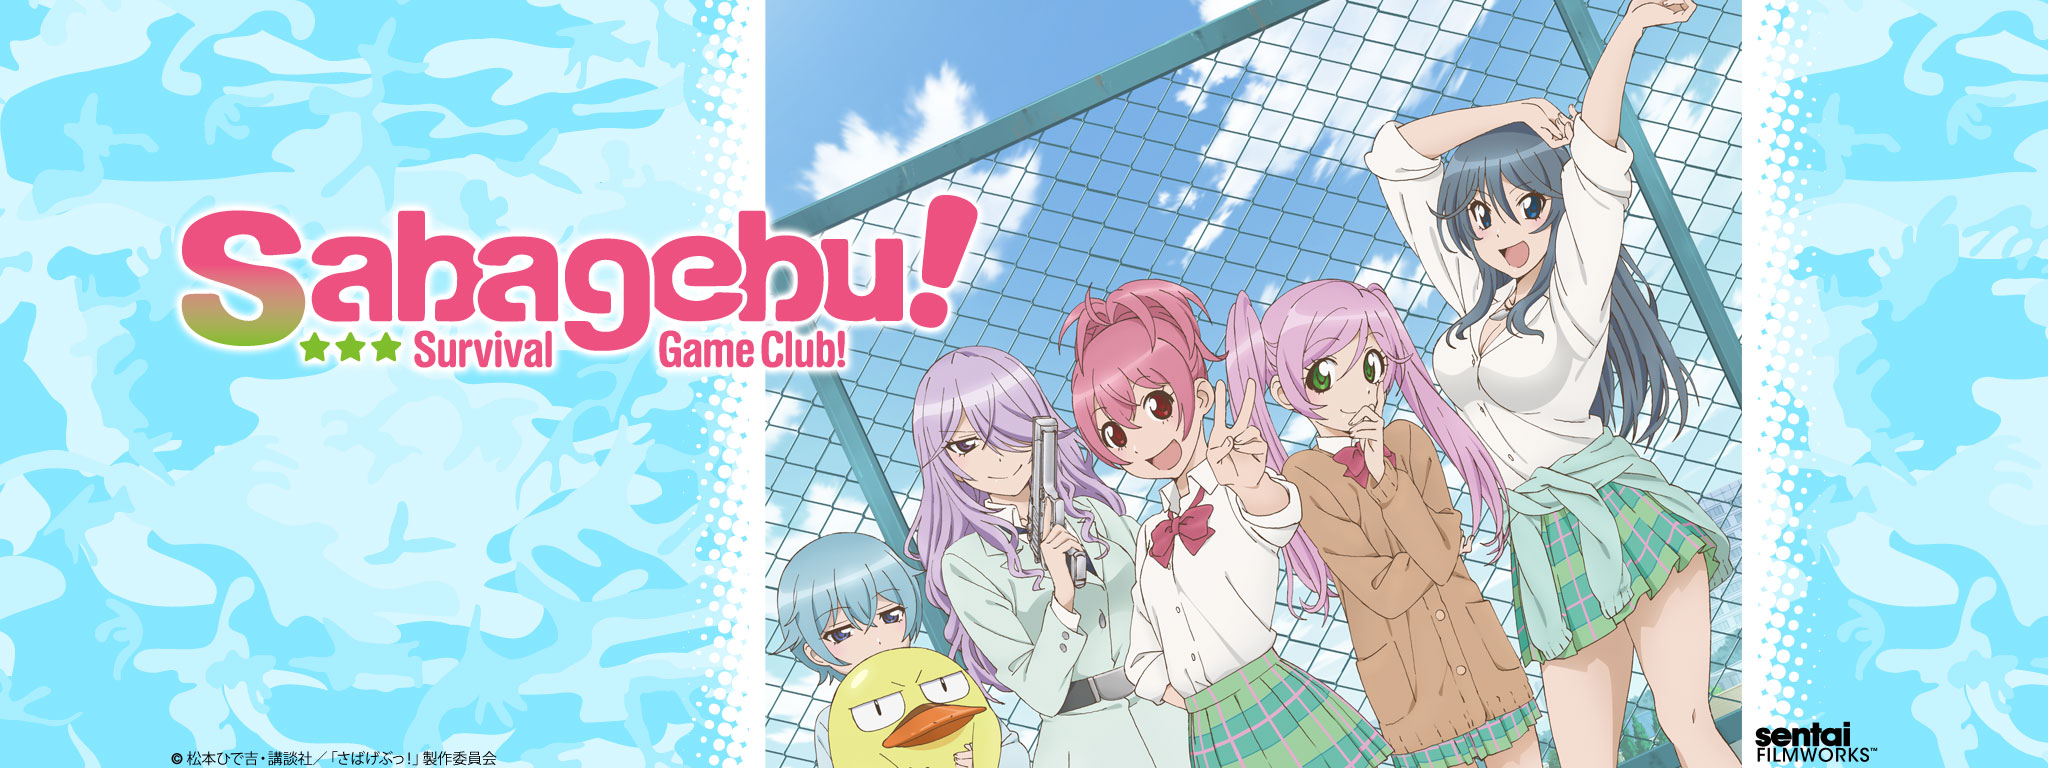 Sabagebu! Survival Game Club! Specials